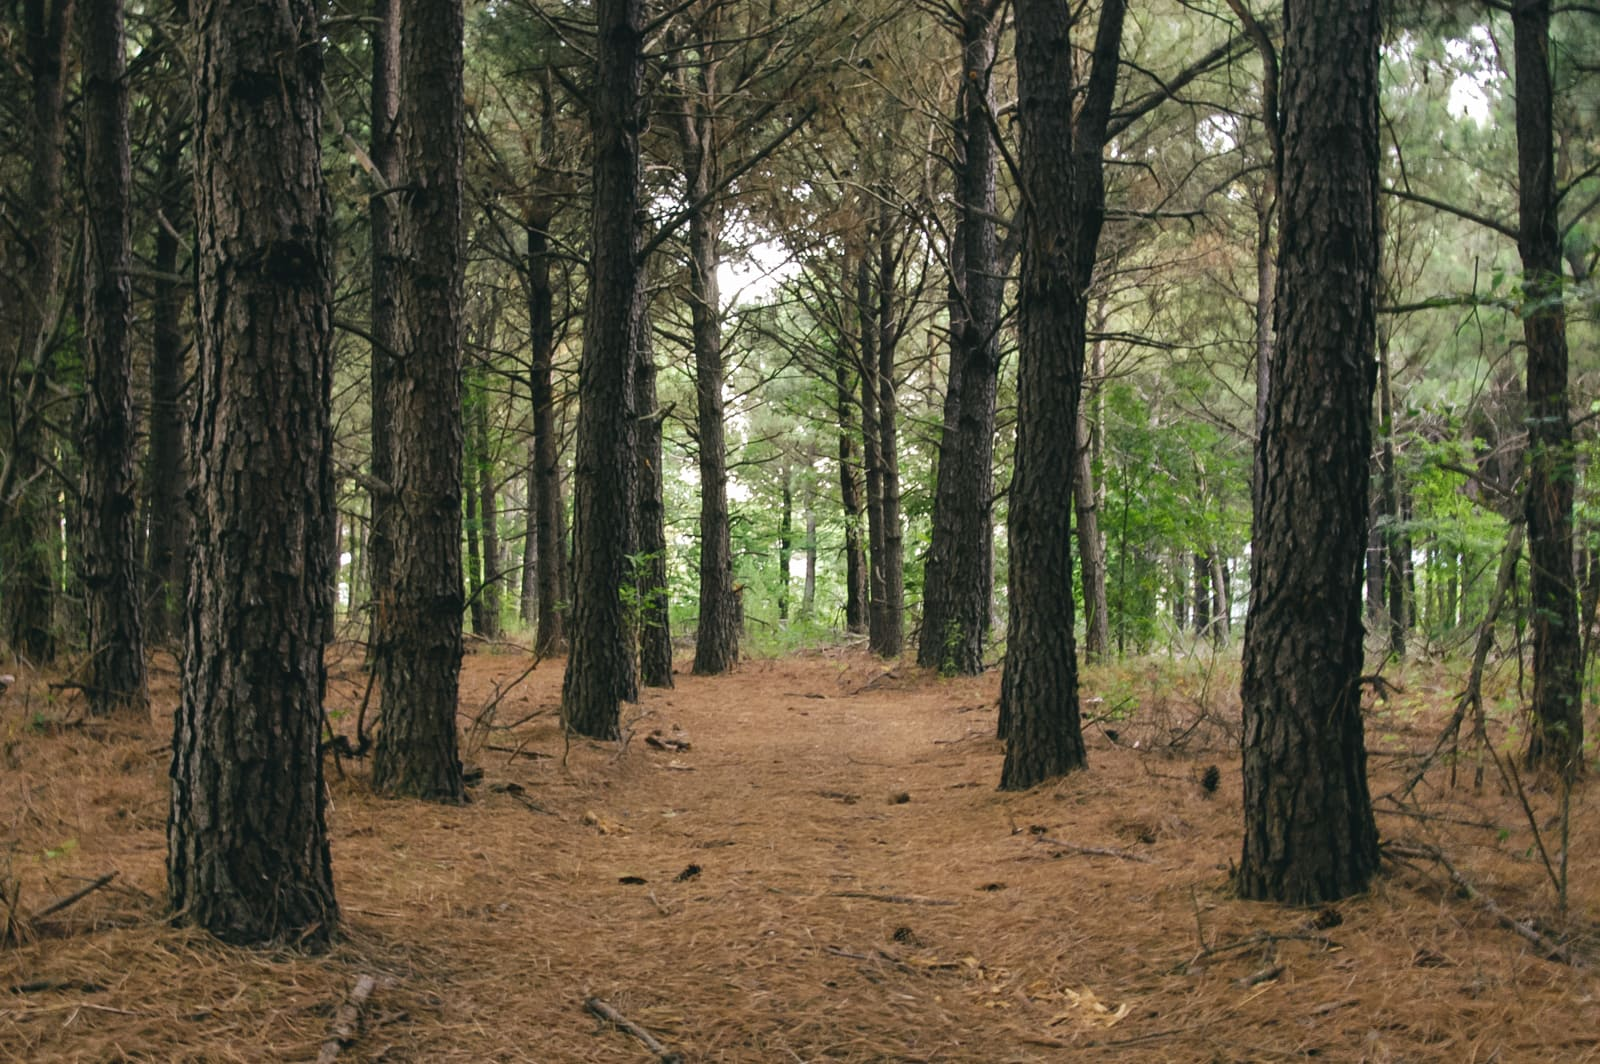 A pine forest in East Texas